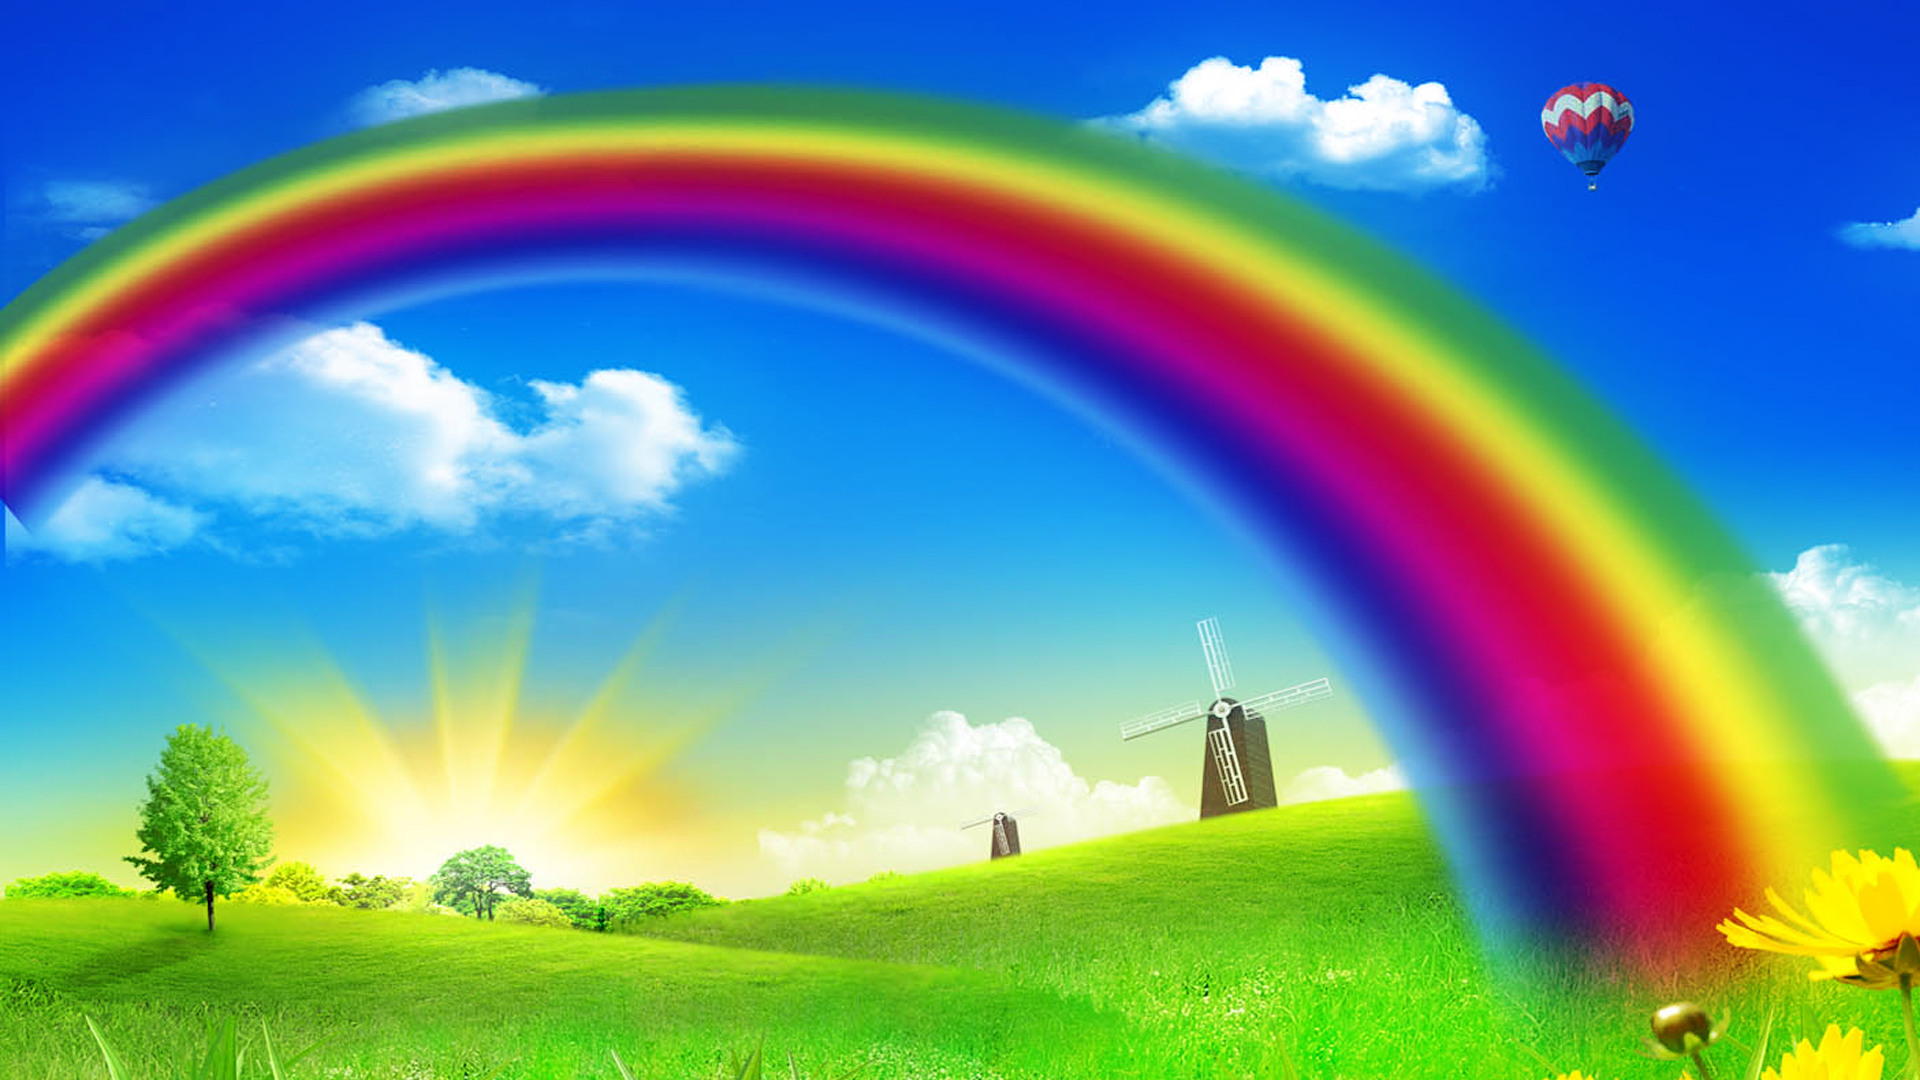 Free Download Rainbow Backgrounds